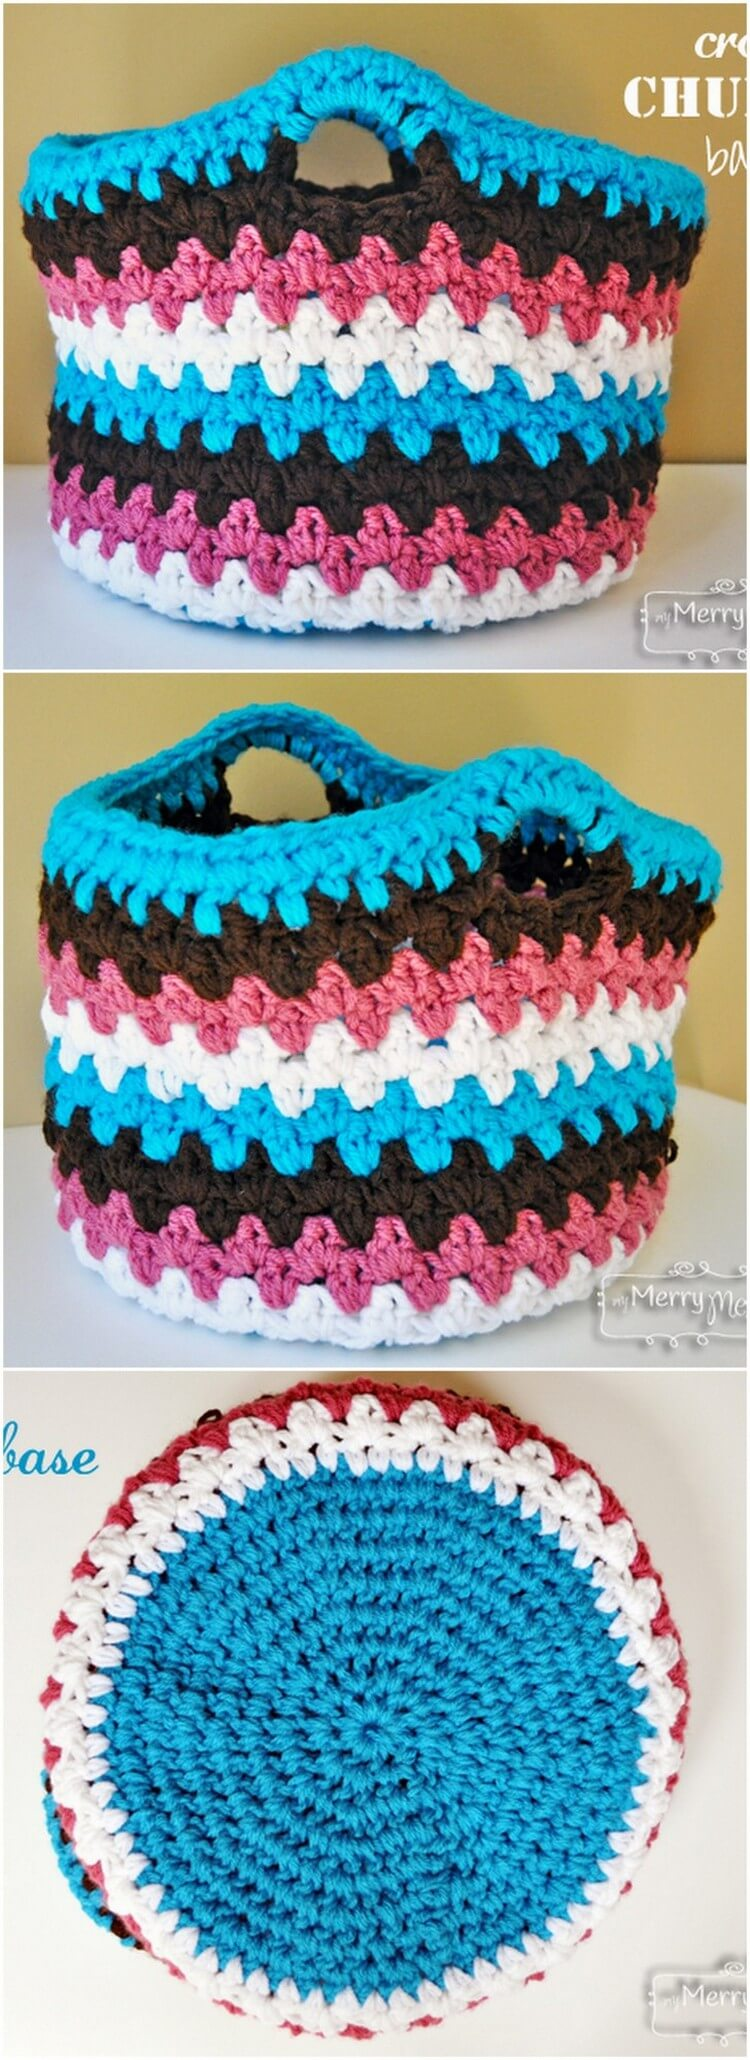 Crochet Basket Pattern (5)